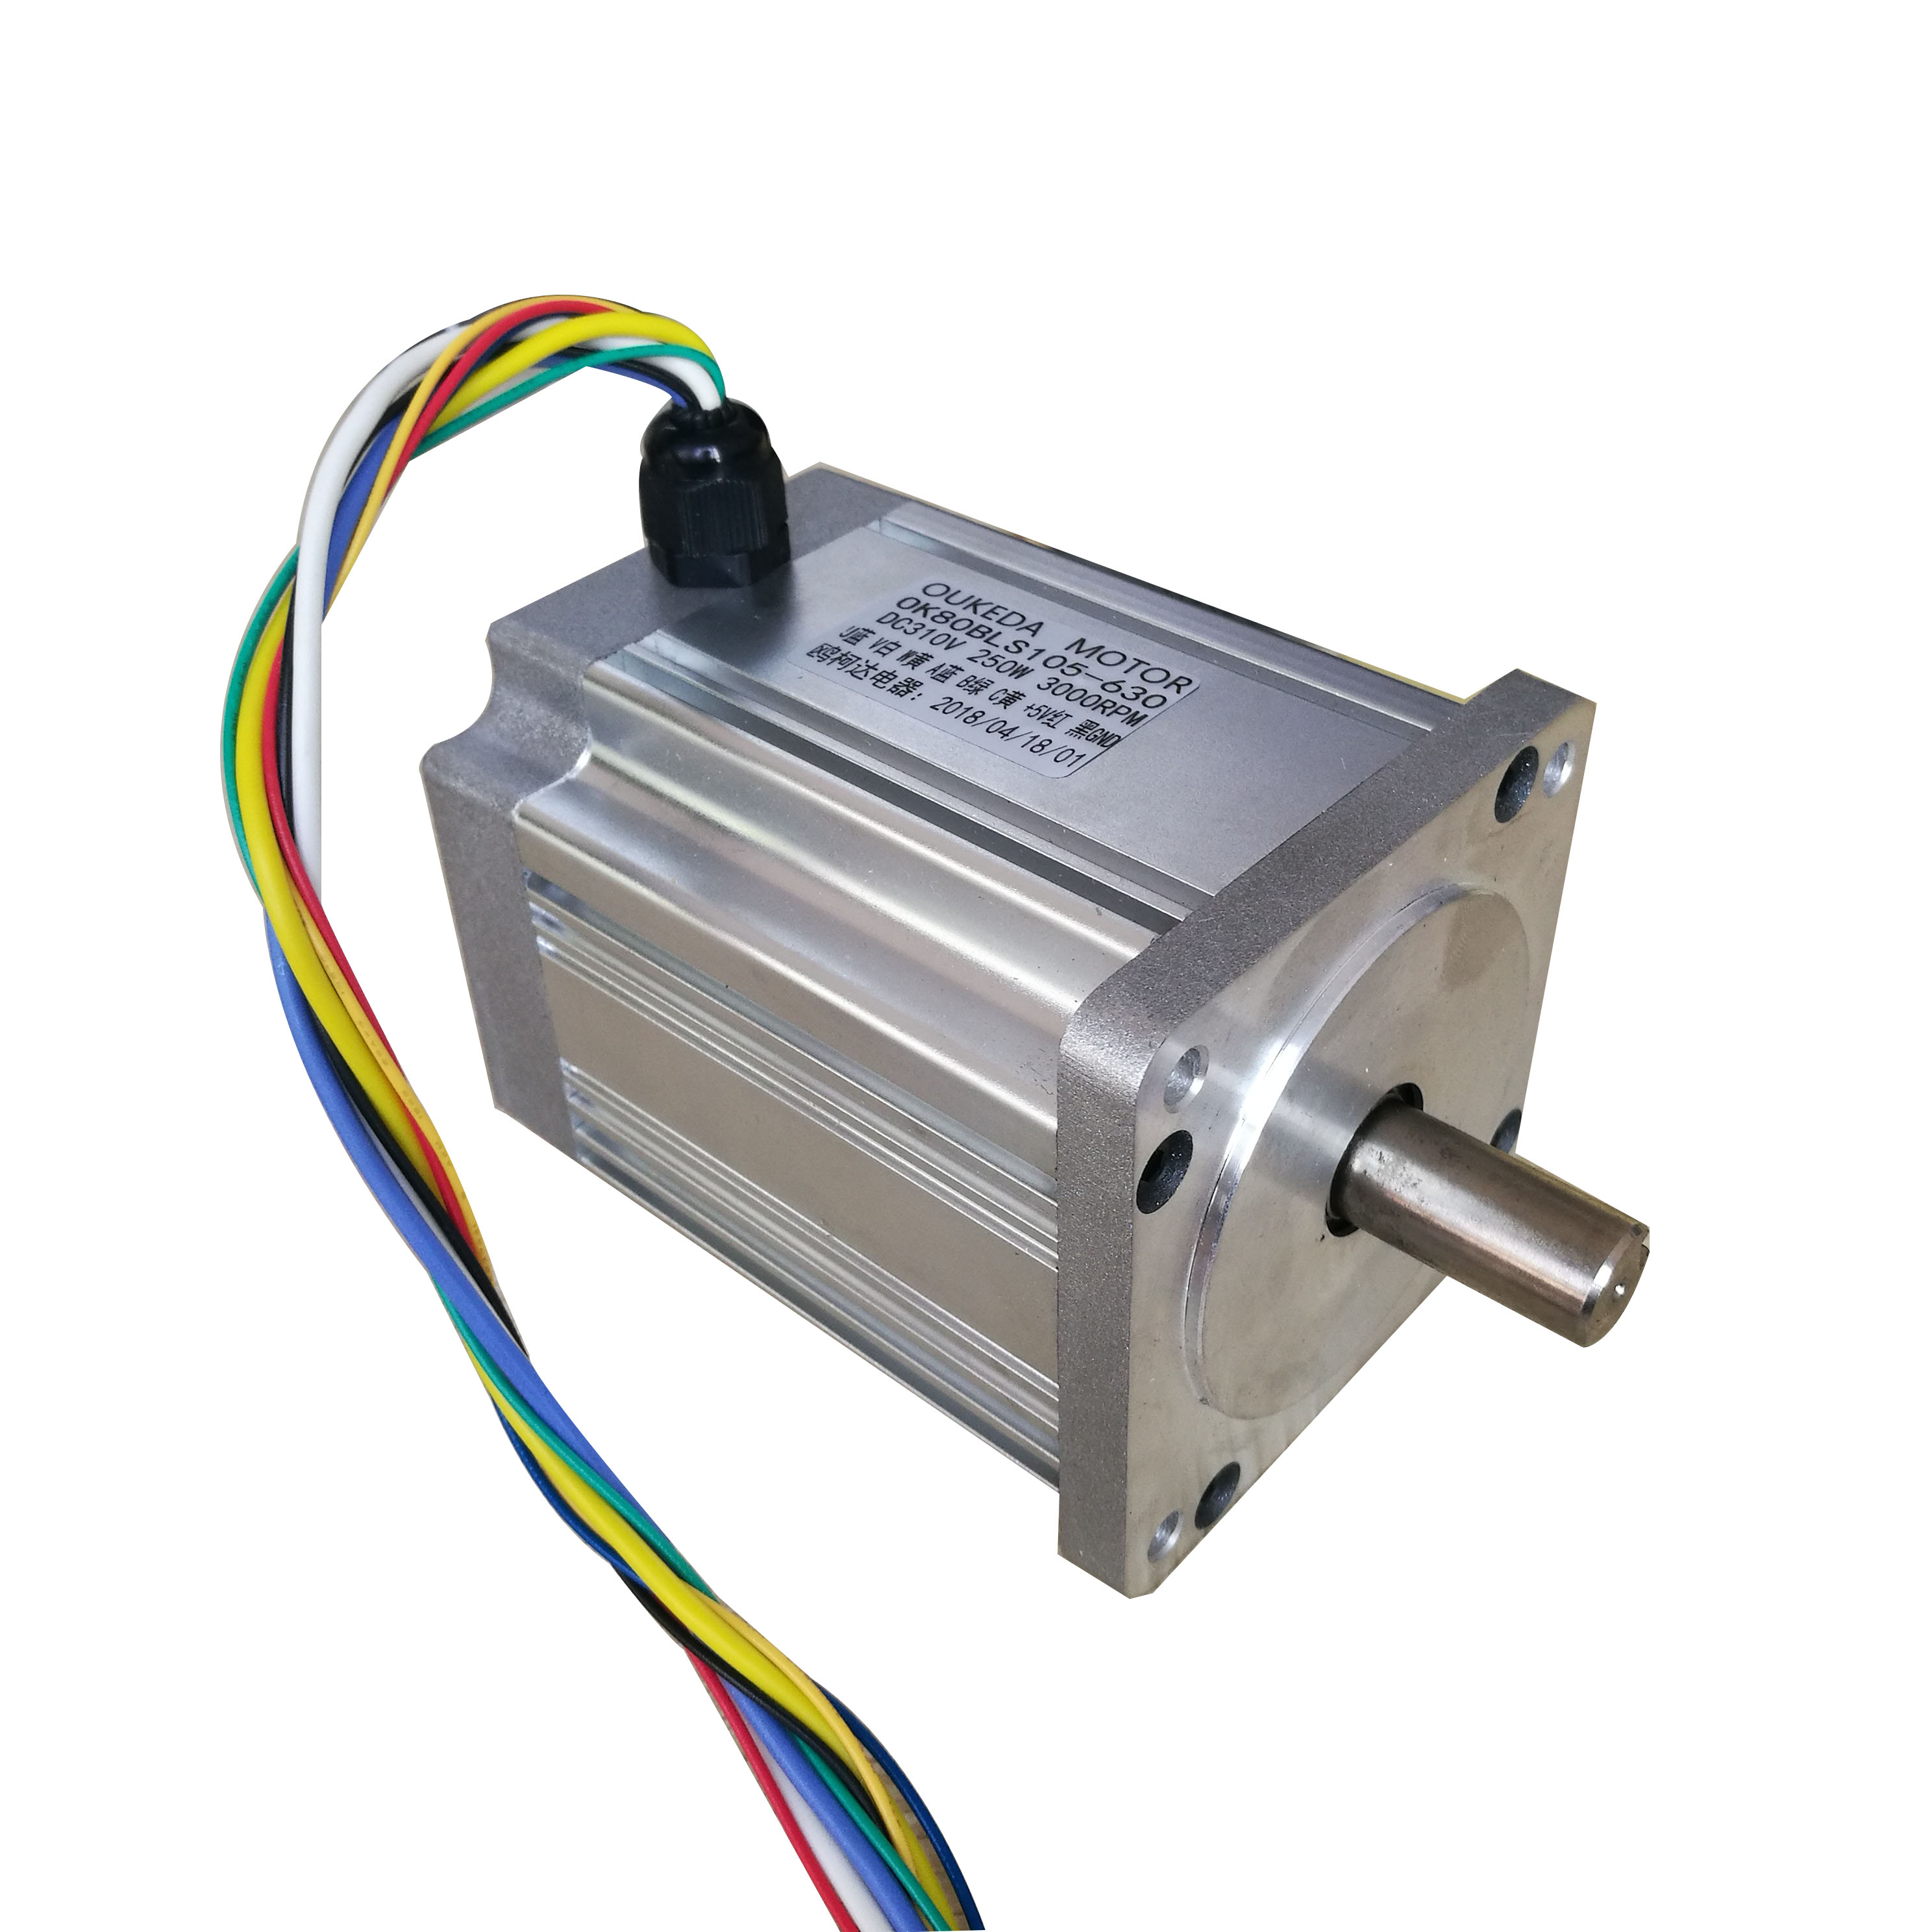 DC220V <font><b>250W</b></font> 3000RPM 0.8Nm 80MM <font><b>DC</b></font> Permanent Magnet <font><b>Brushless</b></font> <font><b>Motor</b></font> Precision Instrument / Machinery / DIY Power Accessories image